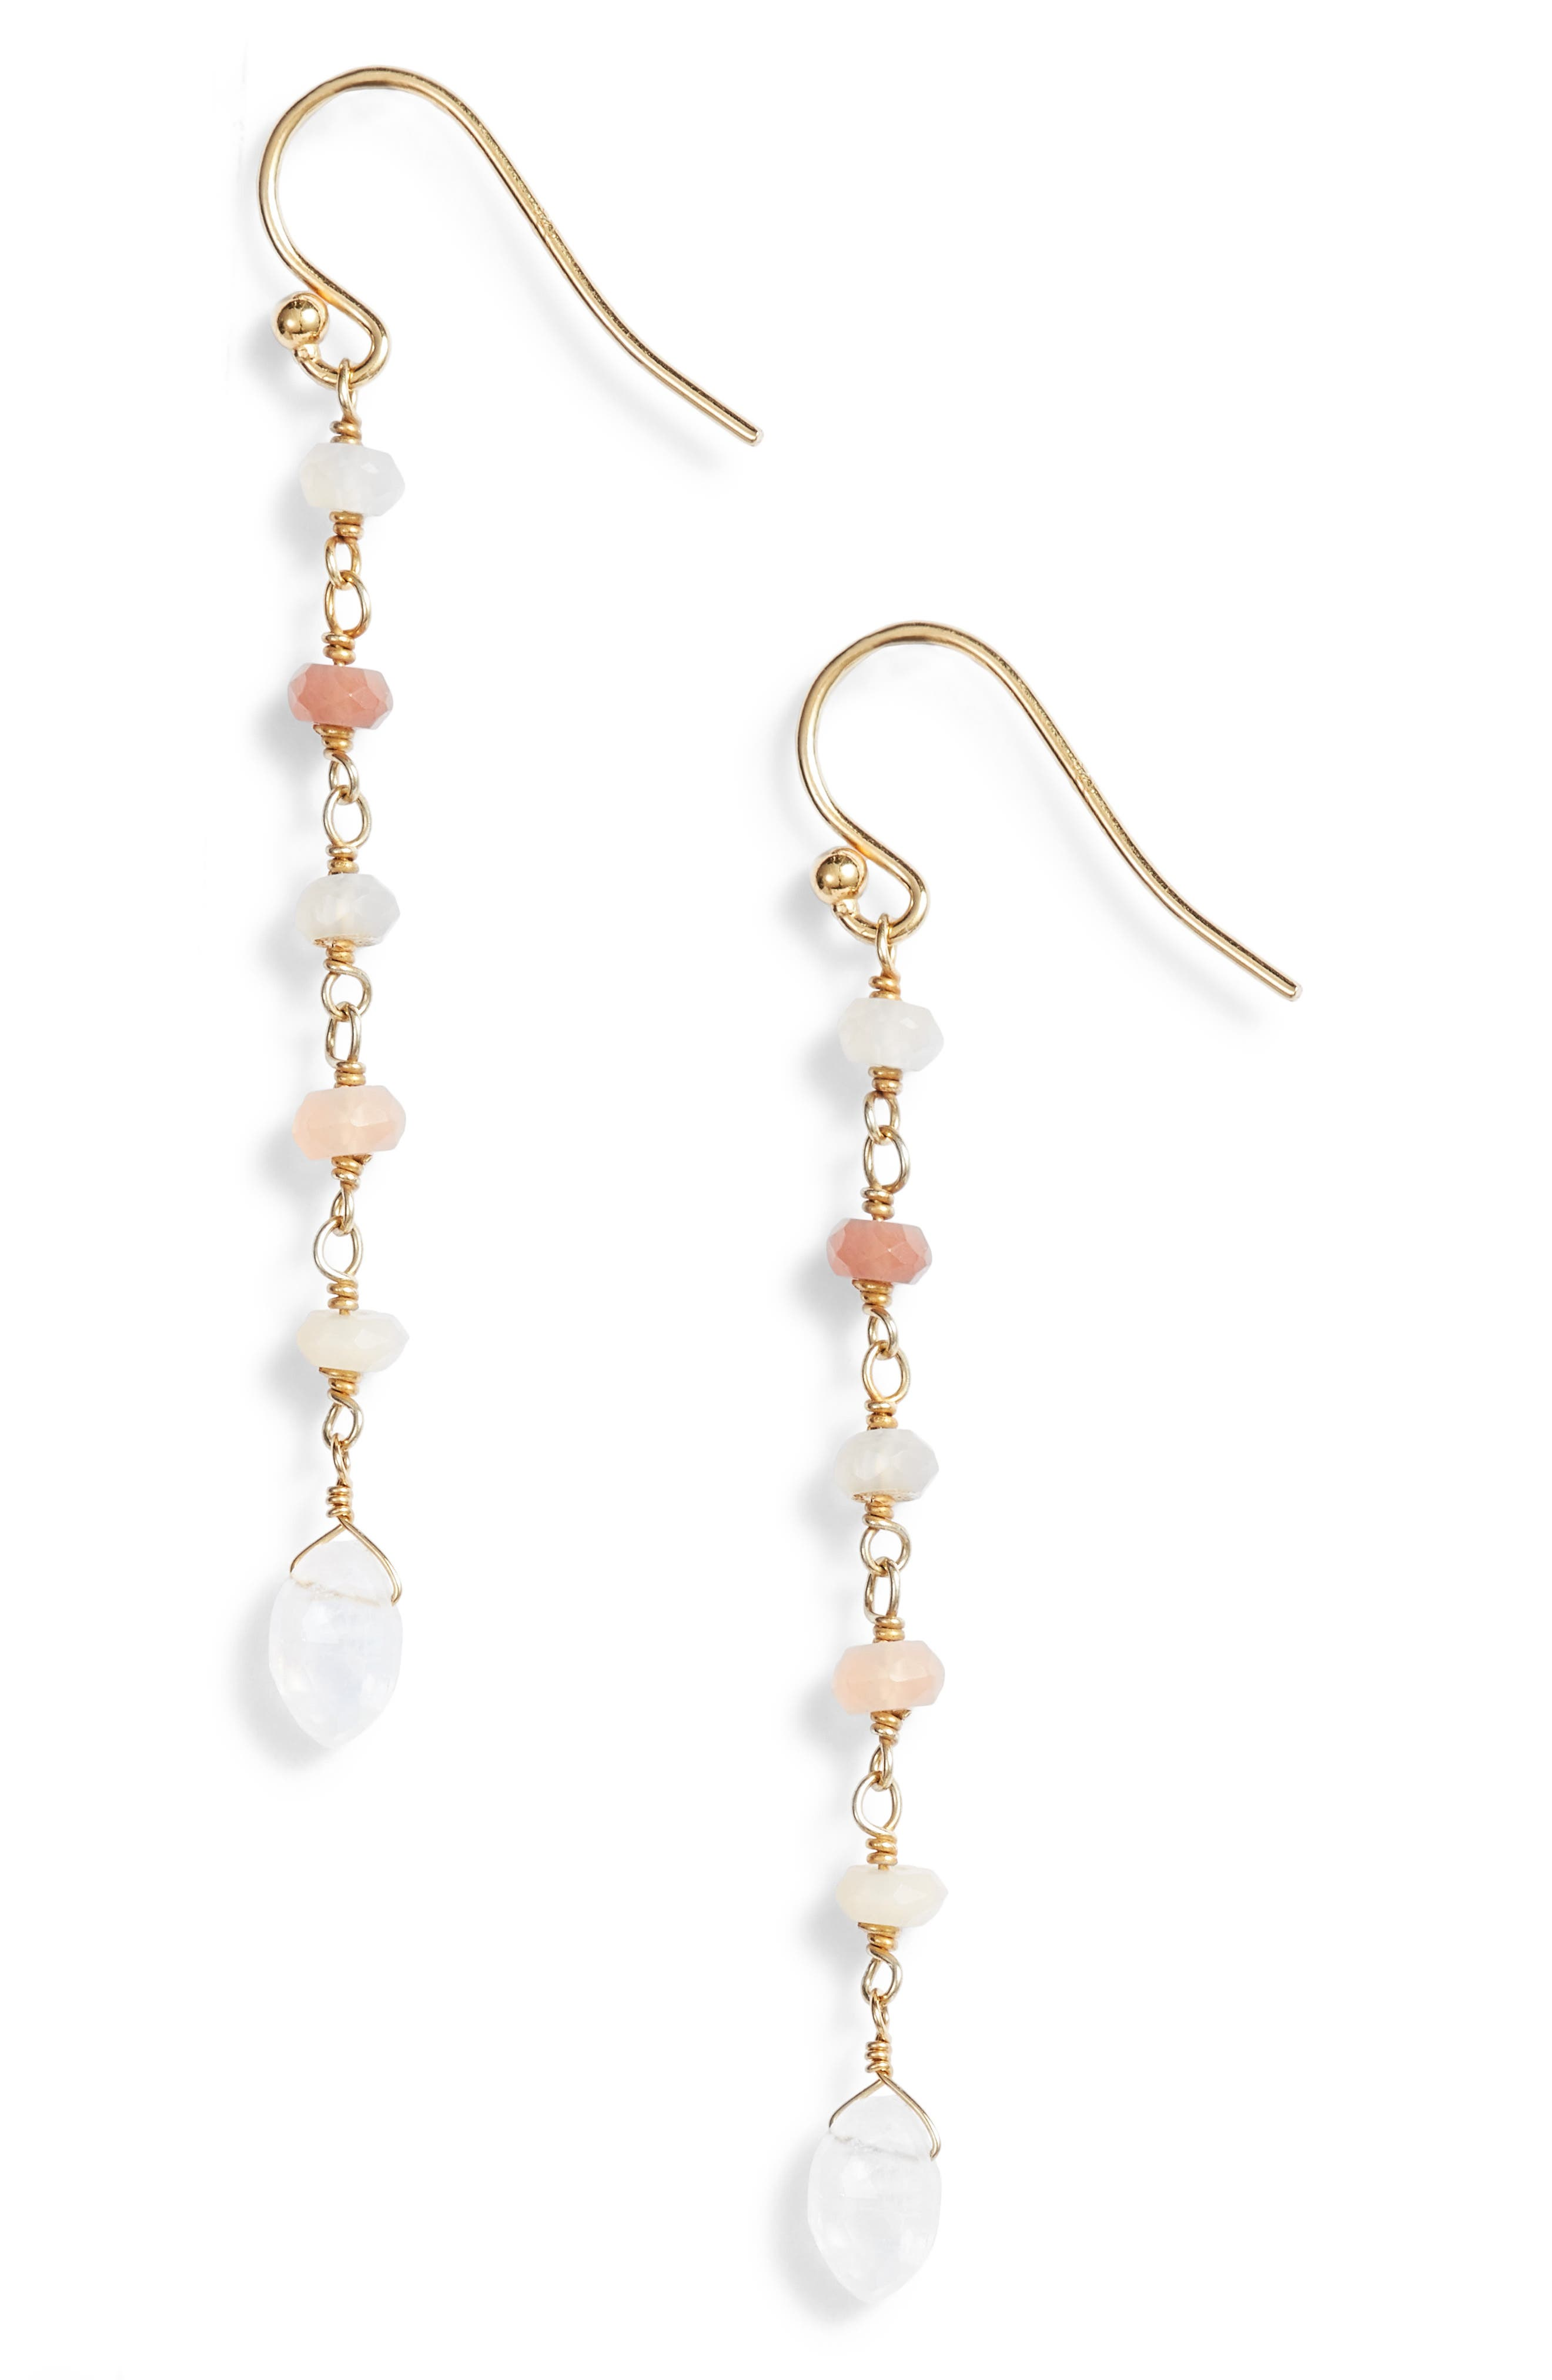 Semiprecious Stone Linear Drop Earrings,                             Main thumbnail 1, color,                             MULTI MOON DROP